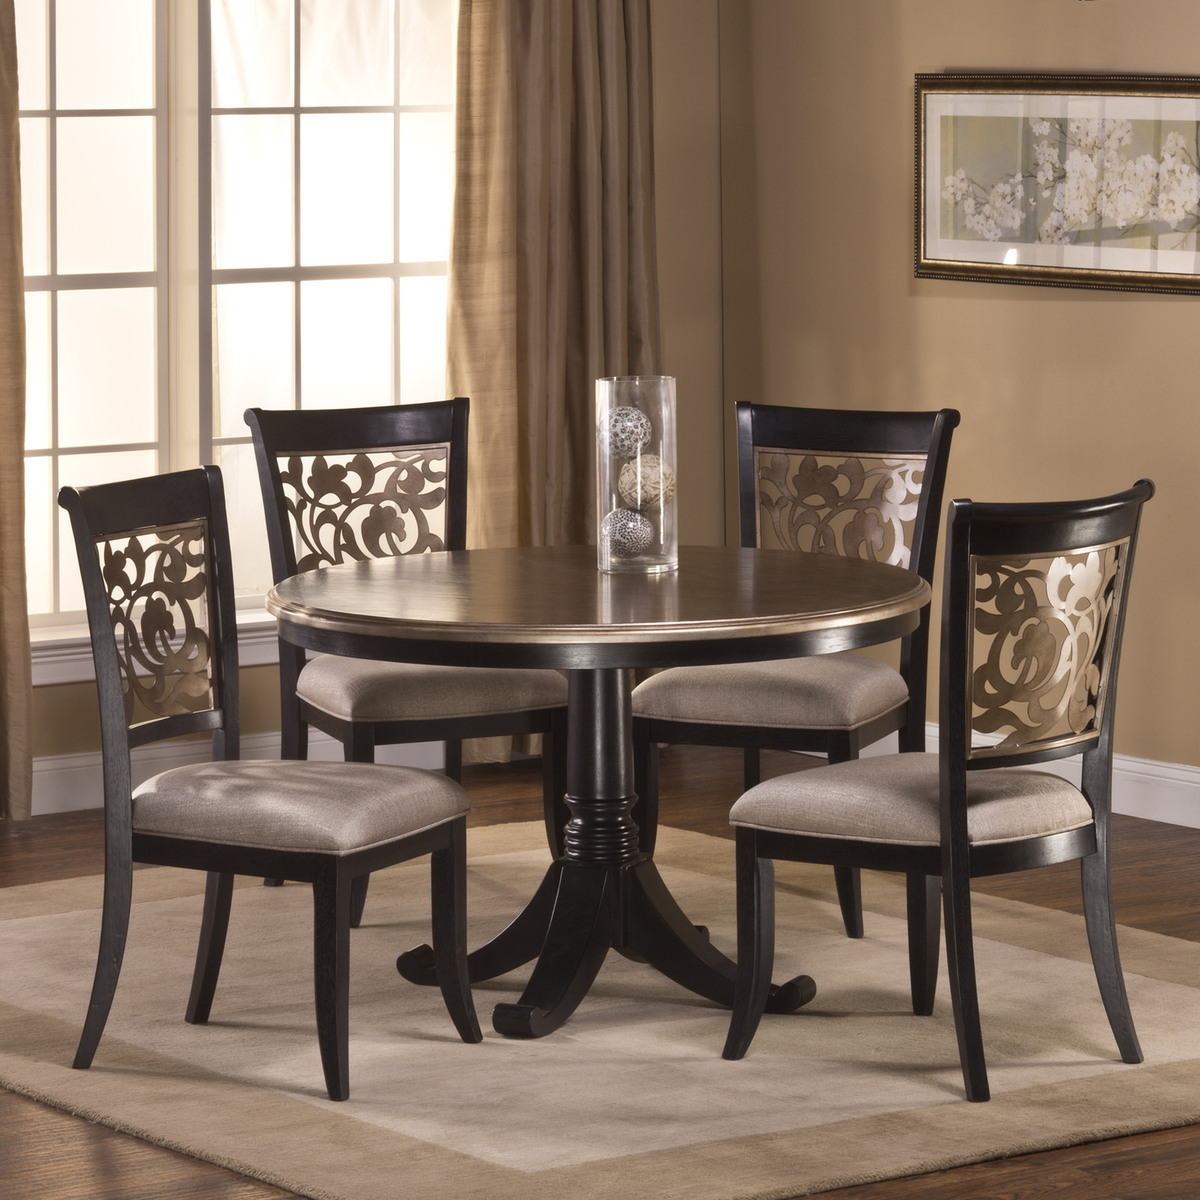 Hillsdale furniture bennington 5pc dining room set in for Black dining room furniture